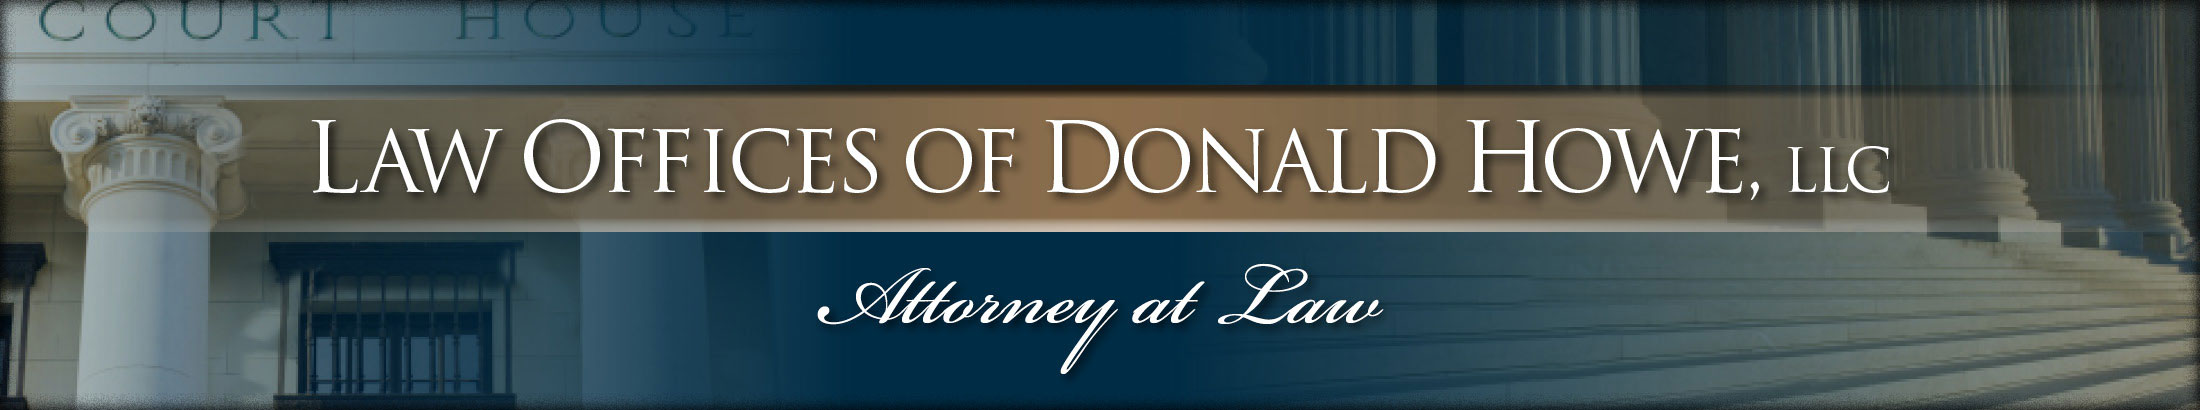 Law Offices of Donald Howe, LLC Logo